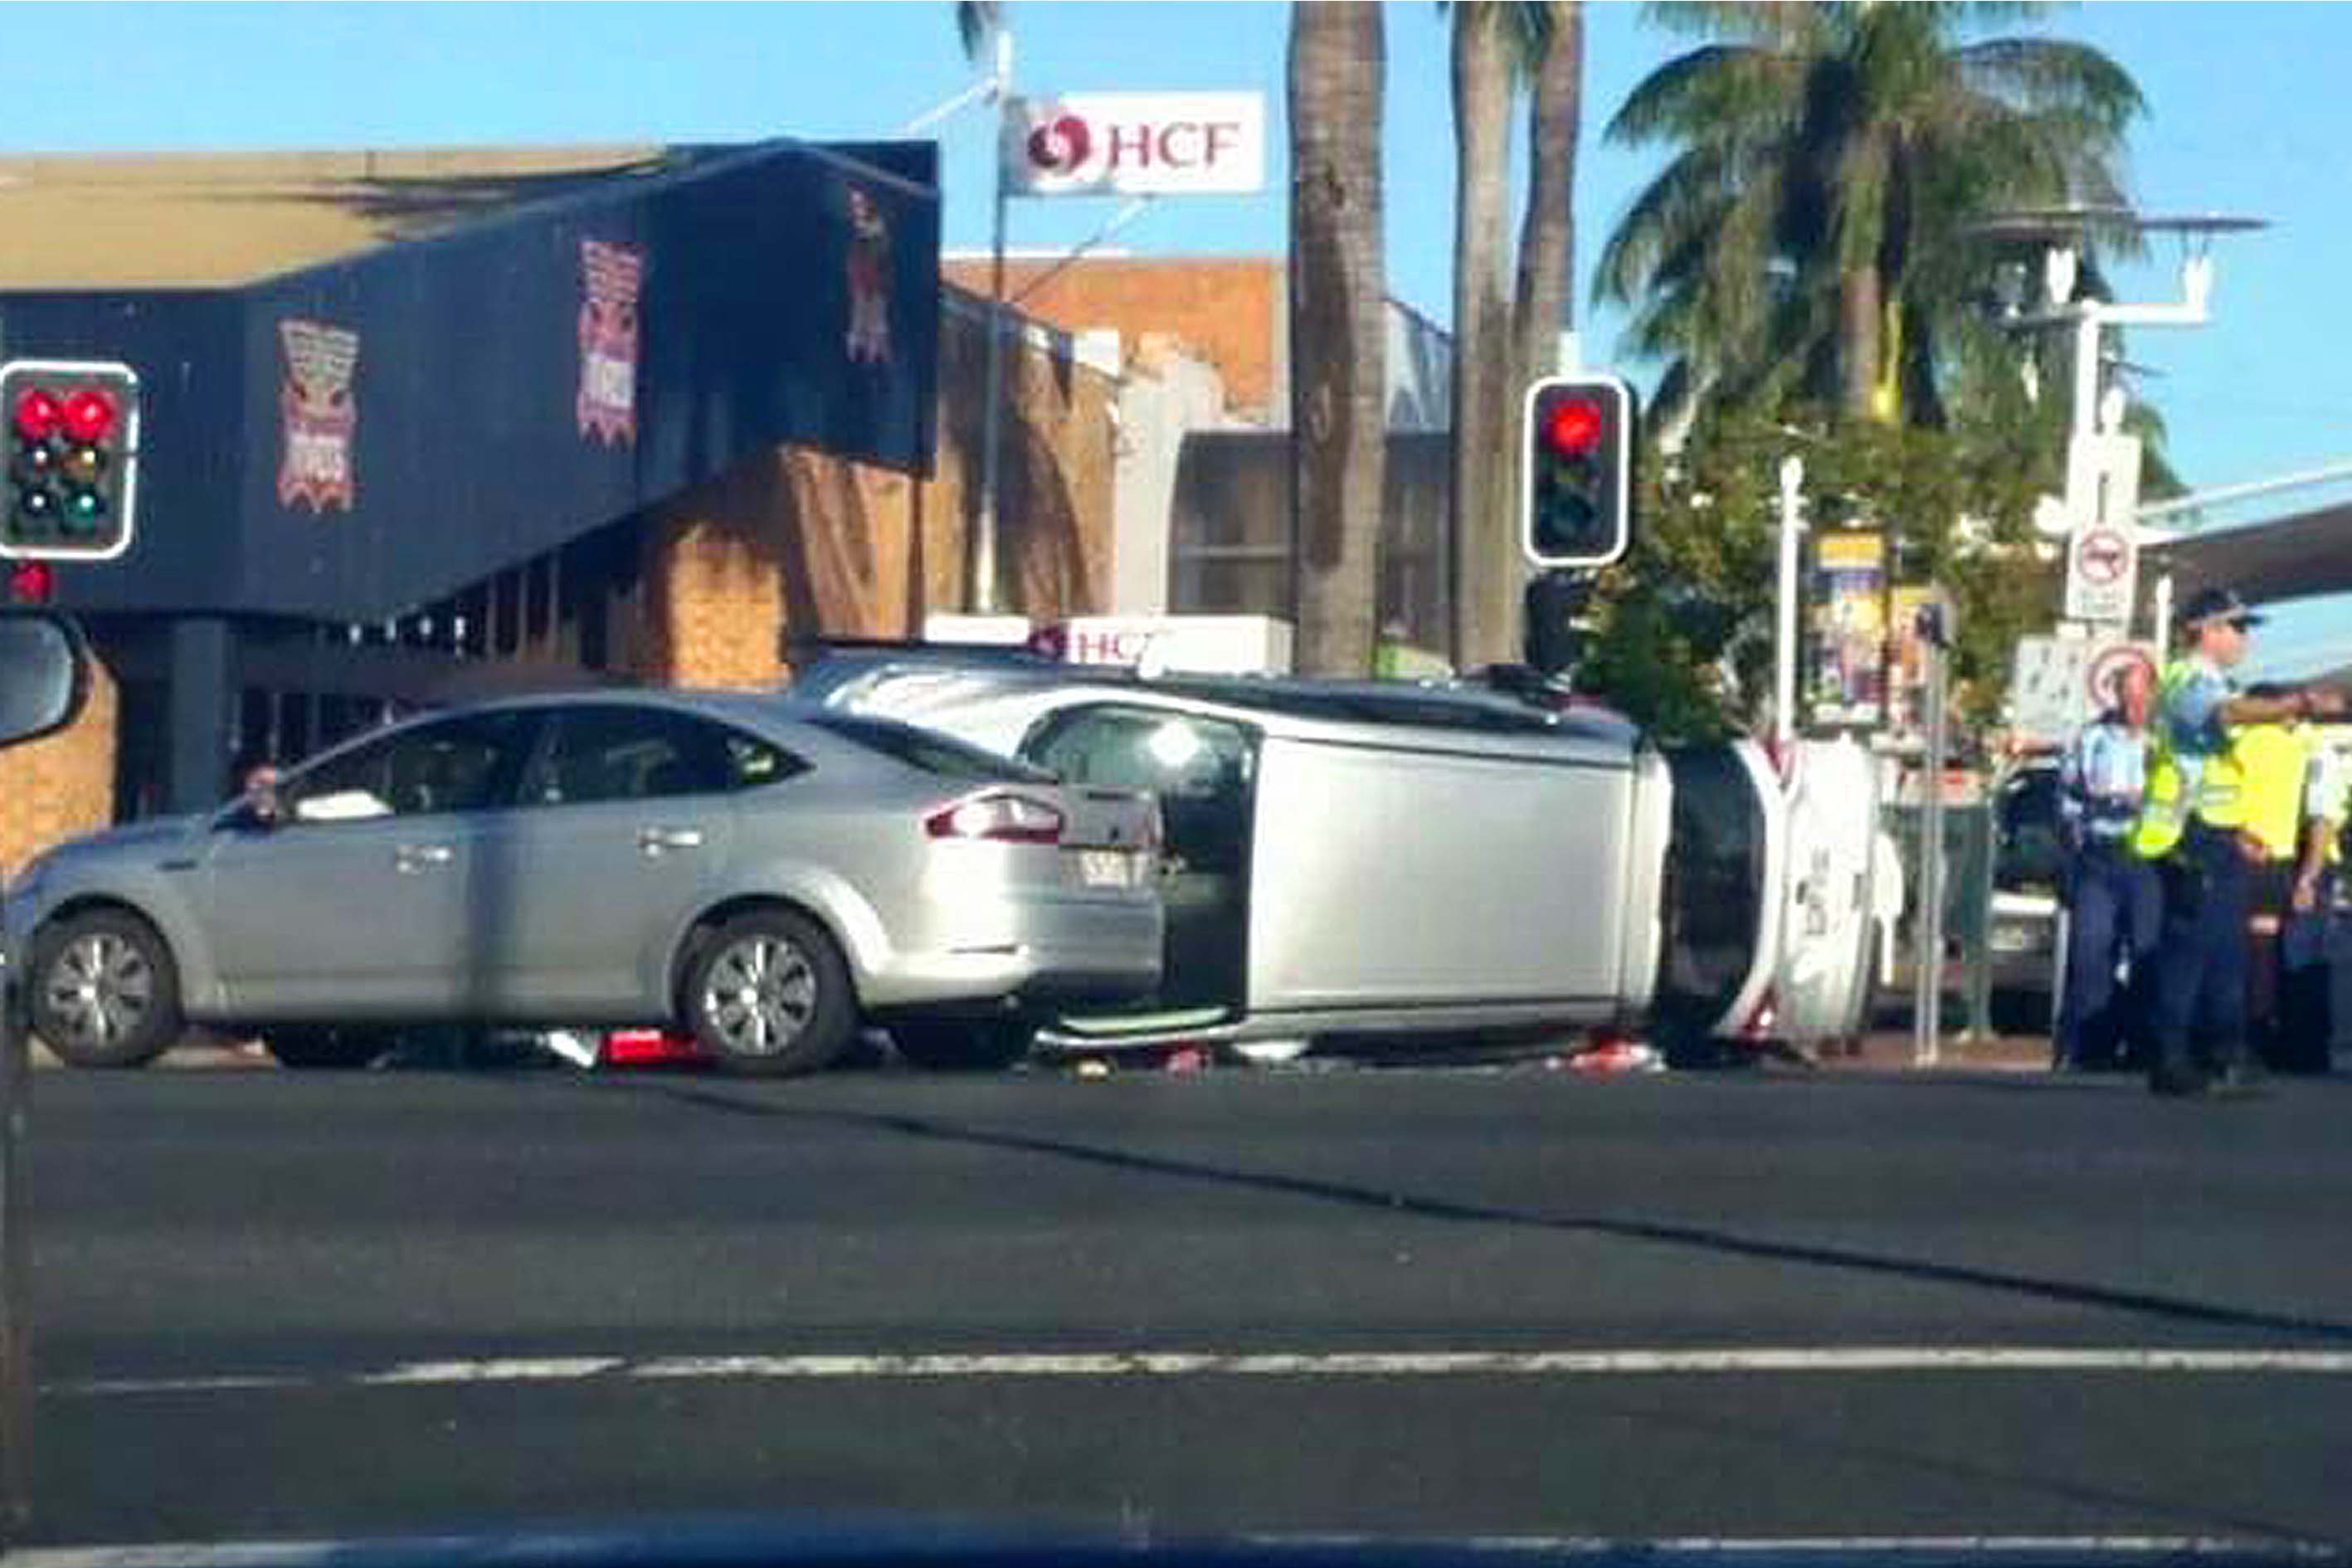 The man who caused this crash, injuring a mother and her child, fled the scene and is wanted by police.